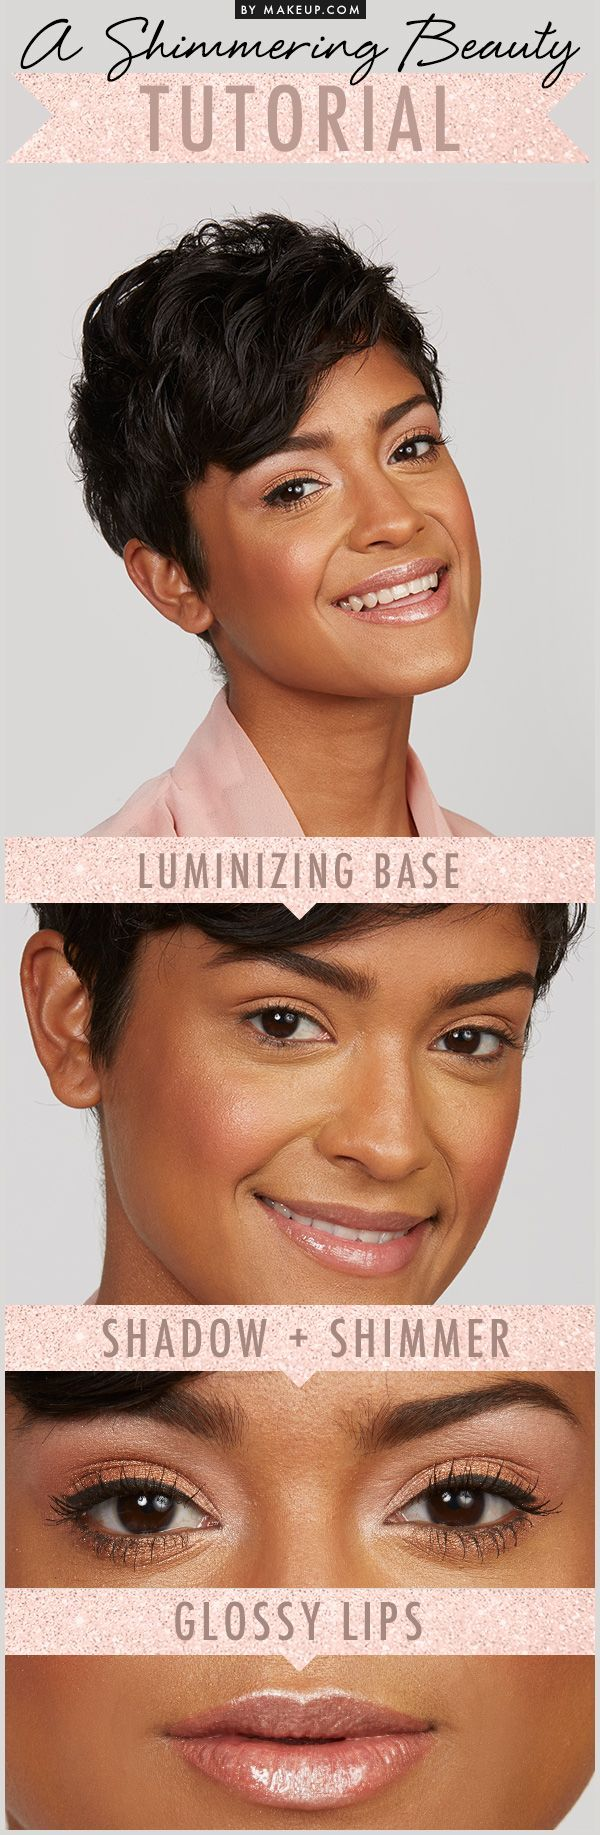 Techniques watches Tuesday Tutorial – Shimmering Beauty Look        Adding a little shimmer is EASY! These makeup tips will add some shimmer to your skin, eyes and lips and you'll be glowing in no time. See how to get this glamorous look here!